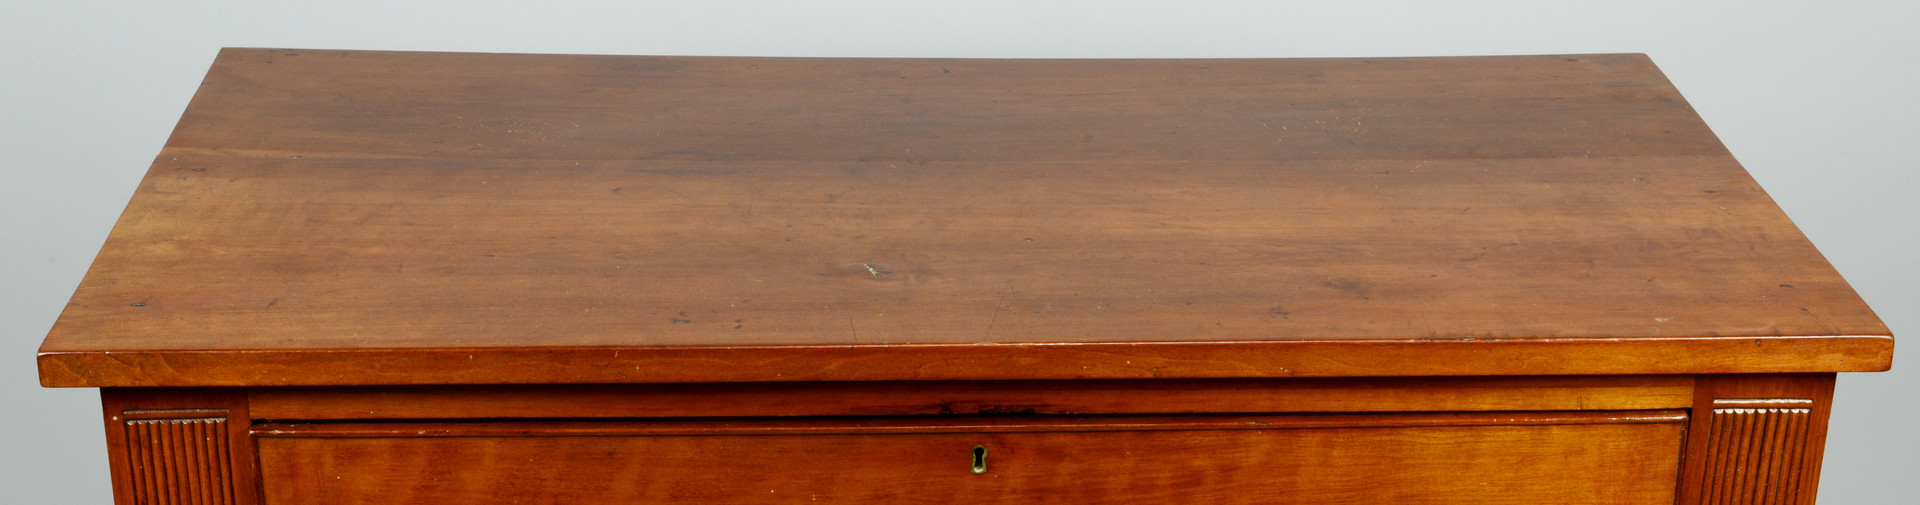 Lot 176: East TN Inlaid & Carved Desk